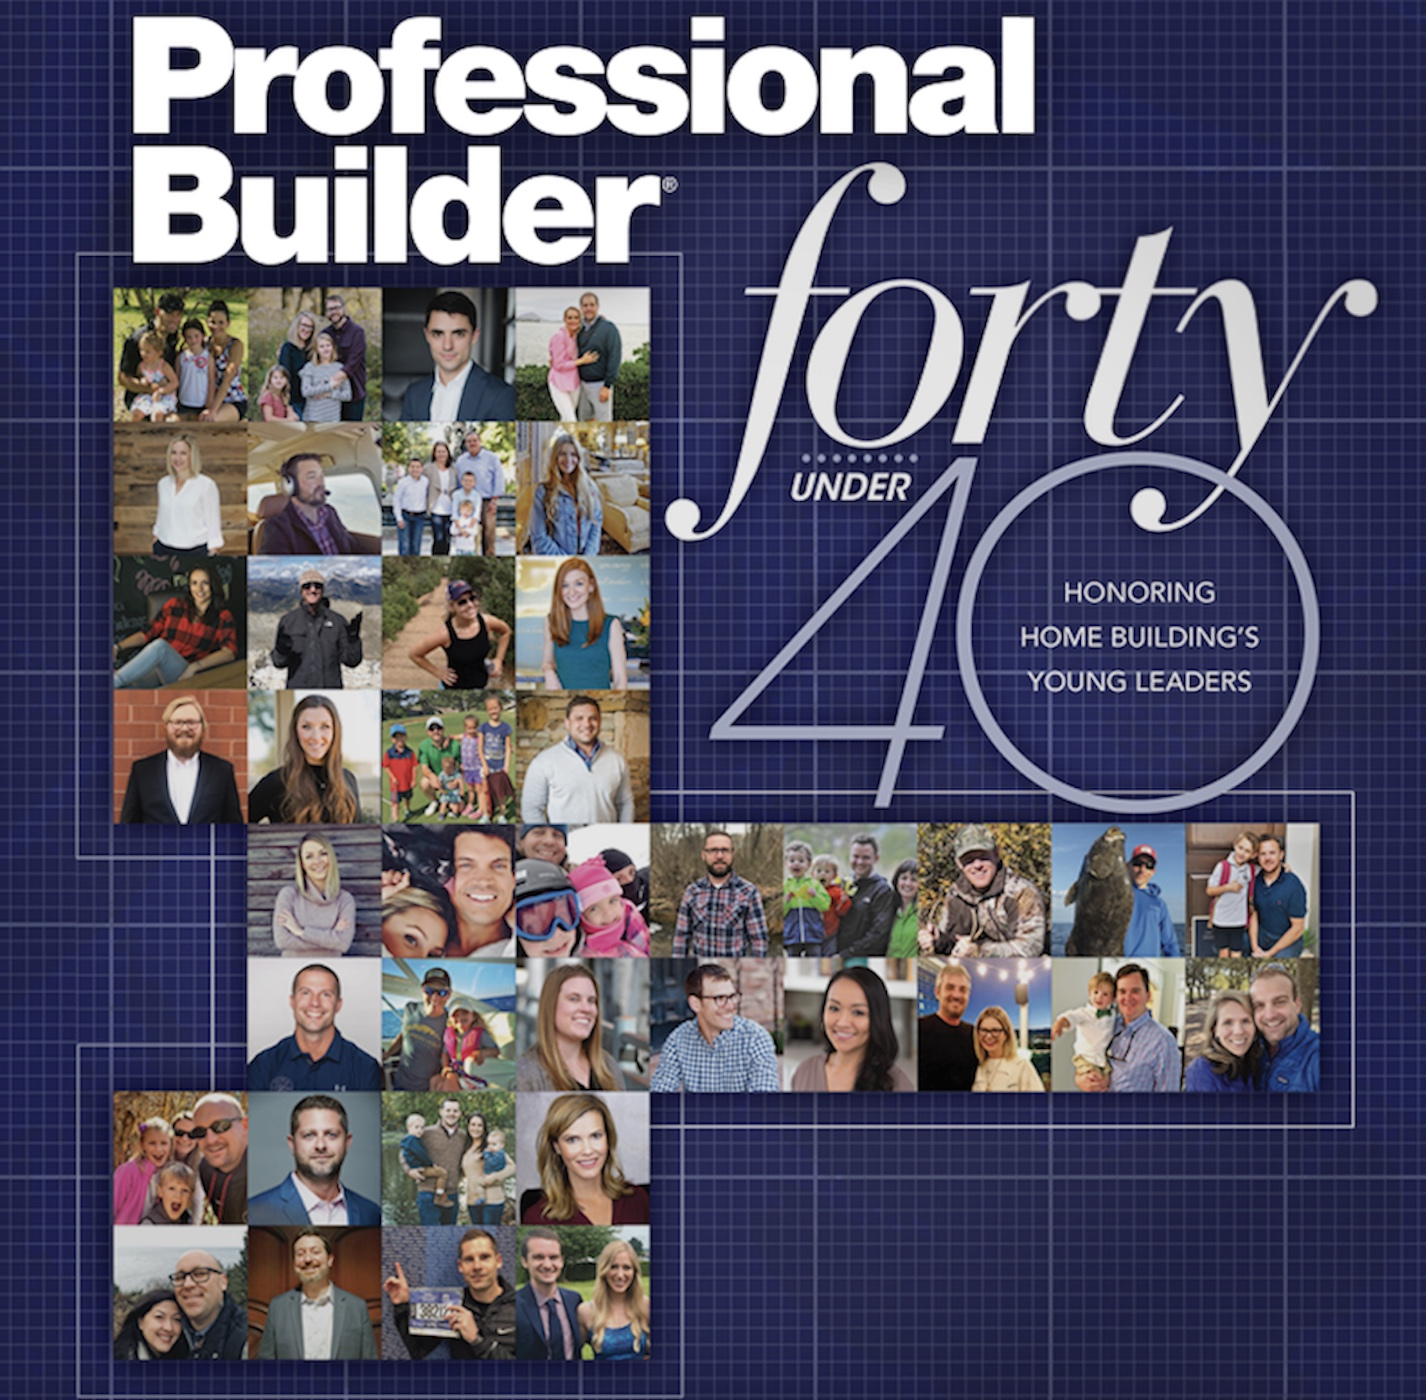 Professional Builder Forty Under 40 award